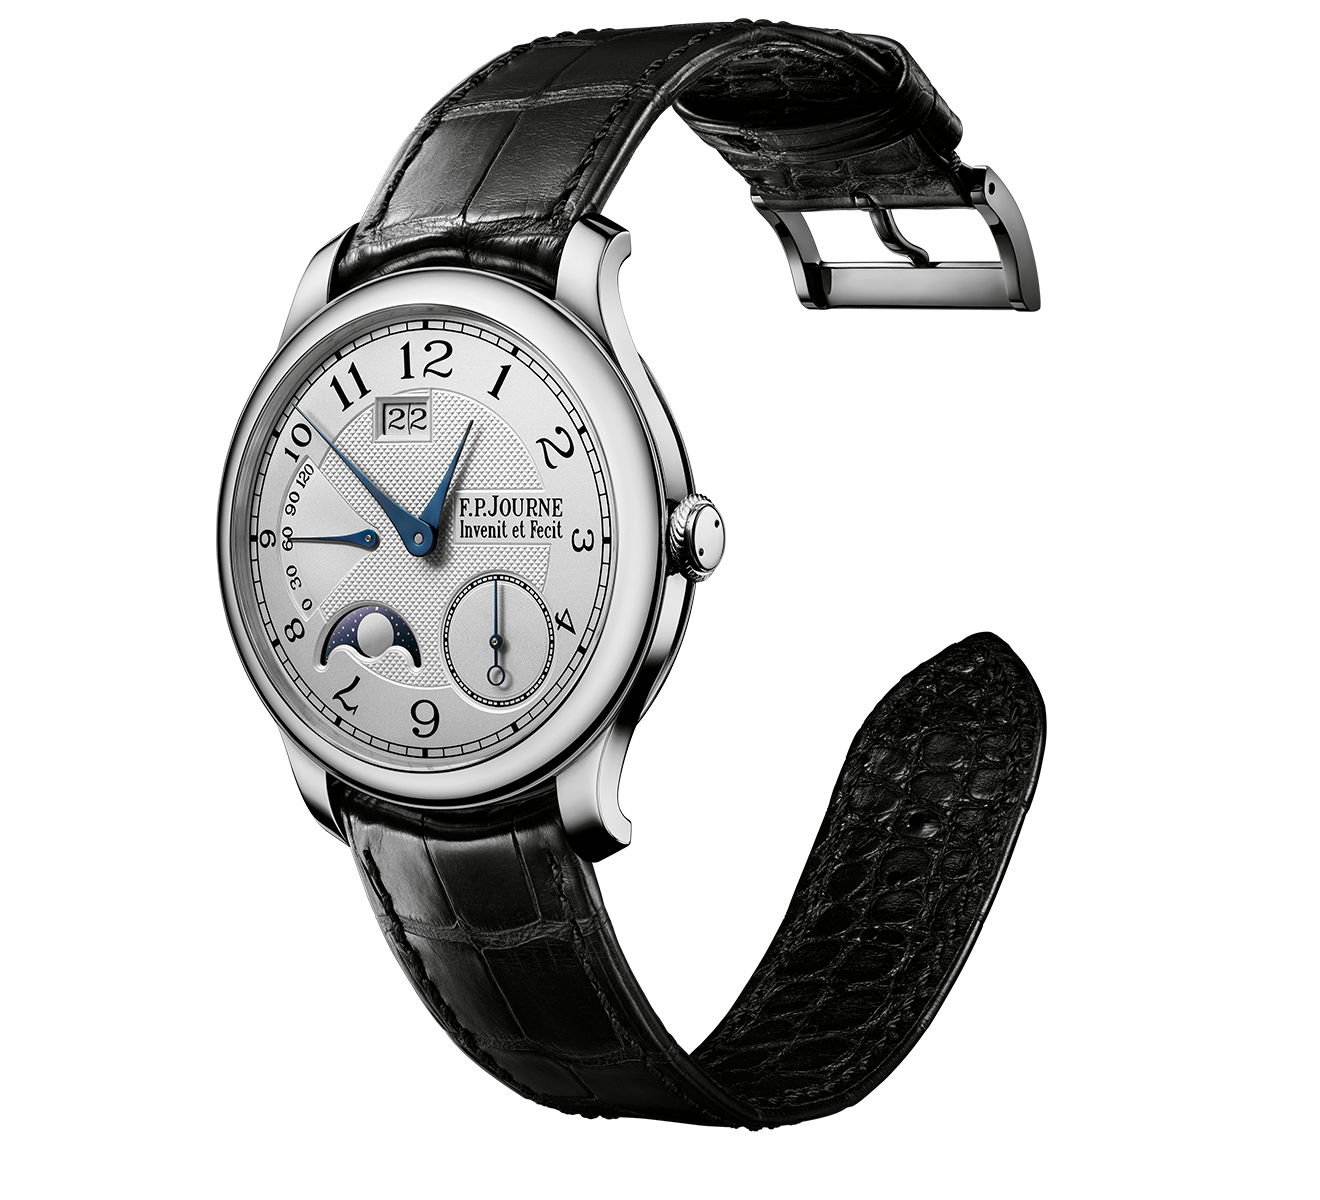 Часы Automatique Lune Platinum F.P.Journe Octa OCTA AUTOMATIQUE LUNE/PT - фото 2 – Mercury